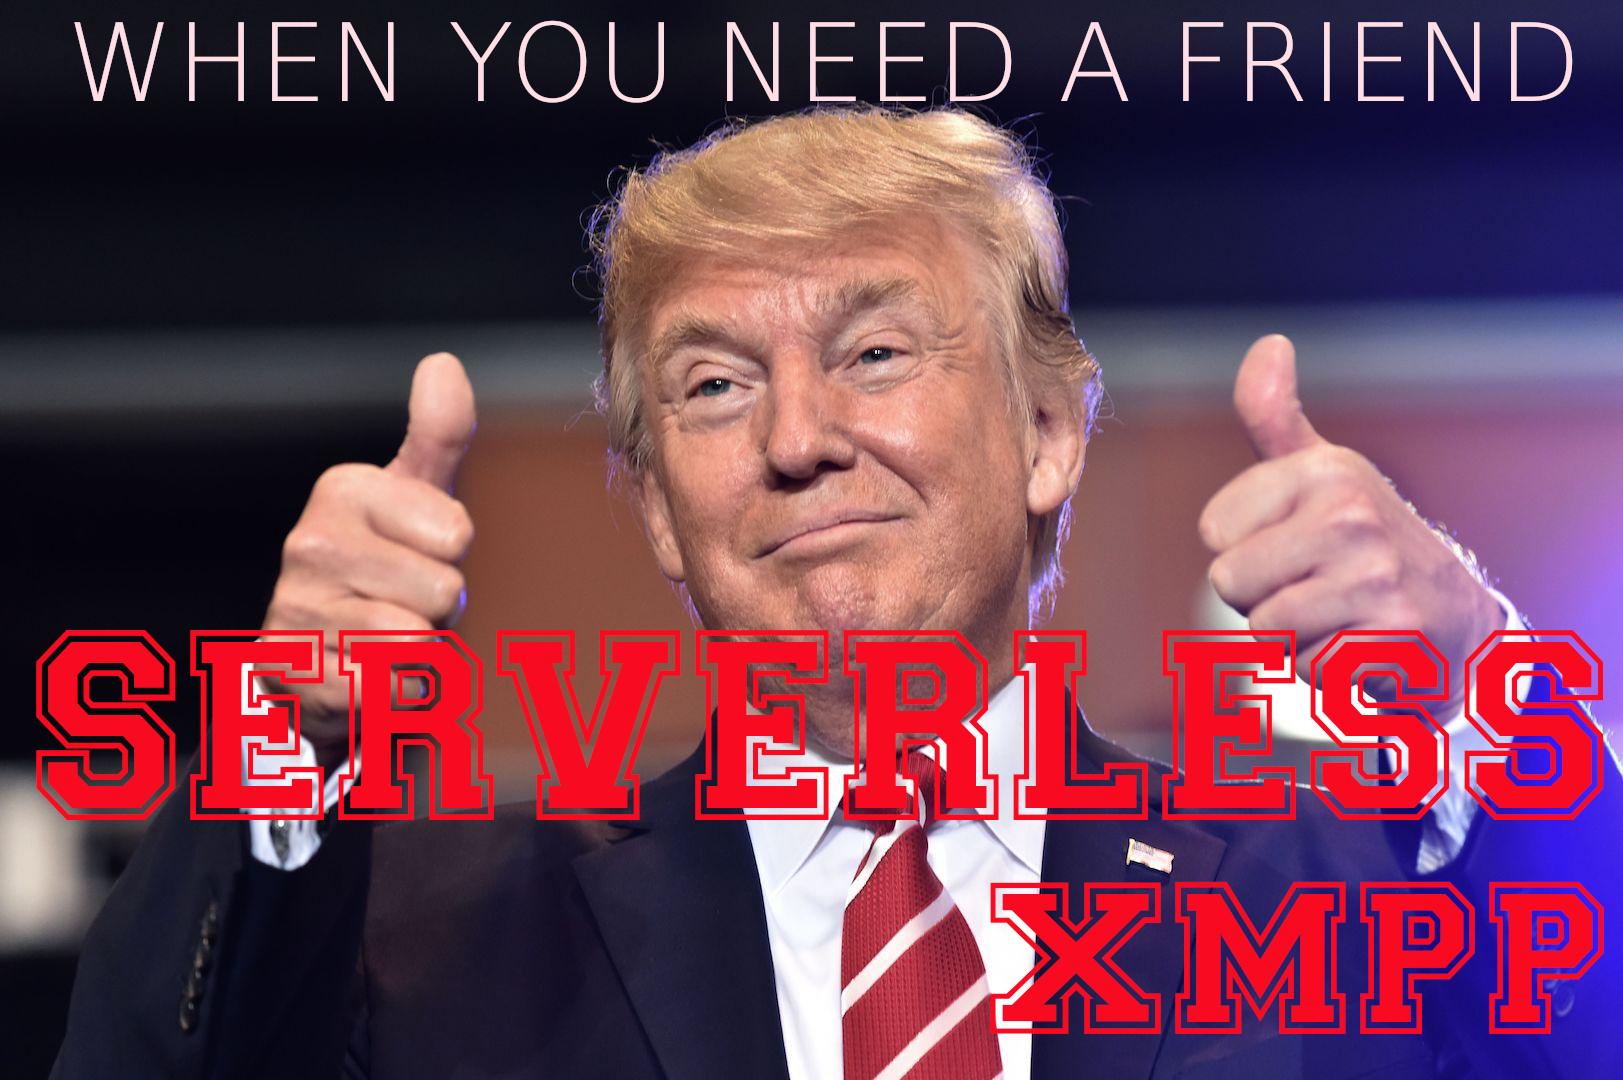 Serverless XMPP, p2p, peer to peer, Donald Trump